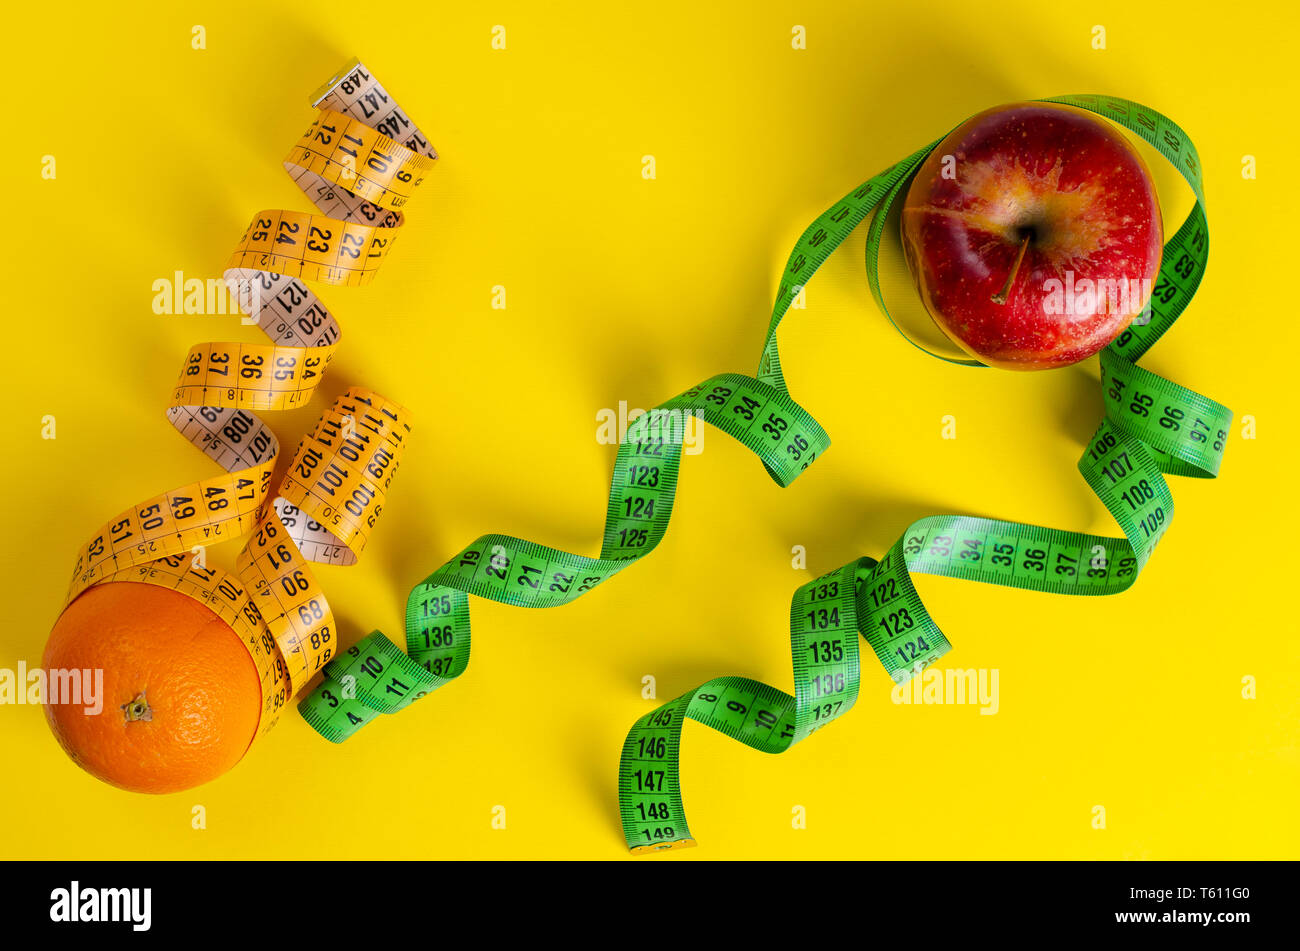 Red apple and orange with measuring tapes on yellow background. Weight loss and slimming treatment concept. Space for text - Stock Image